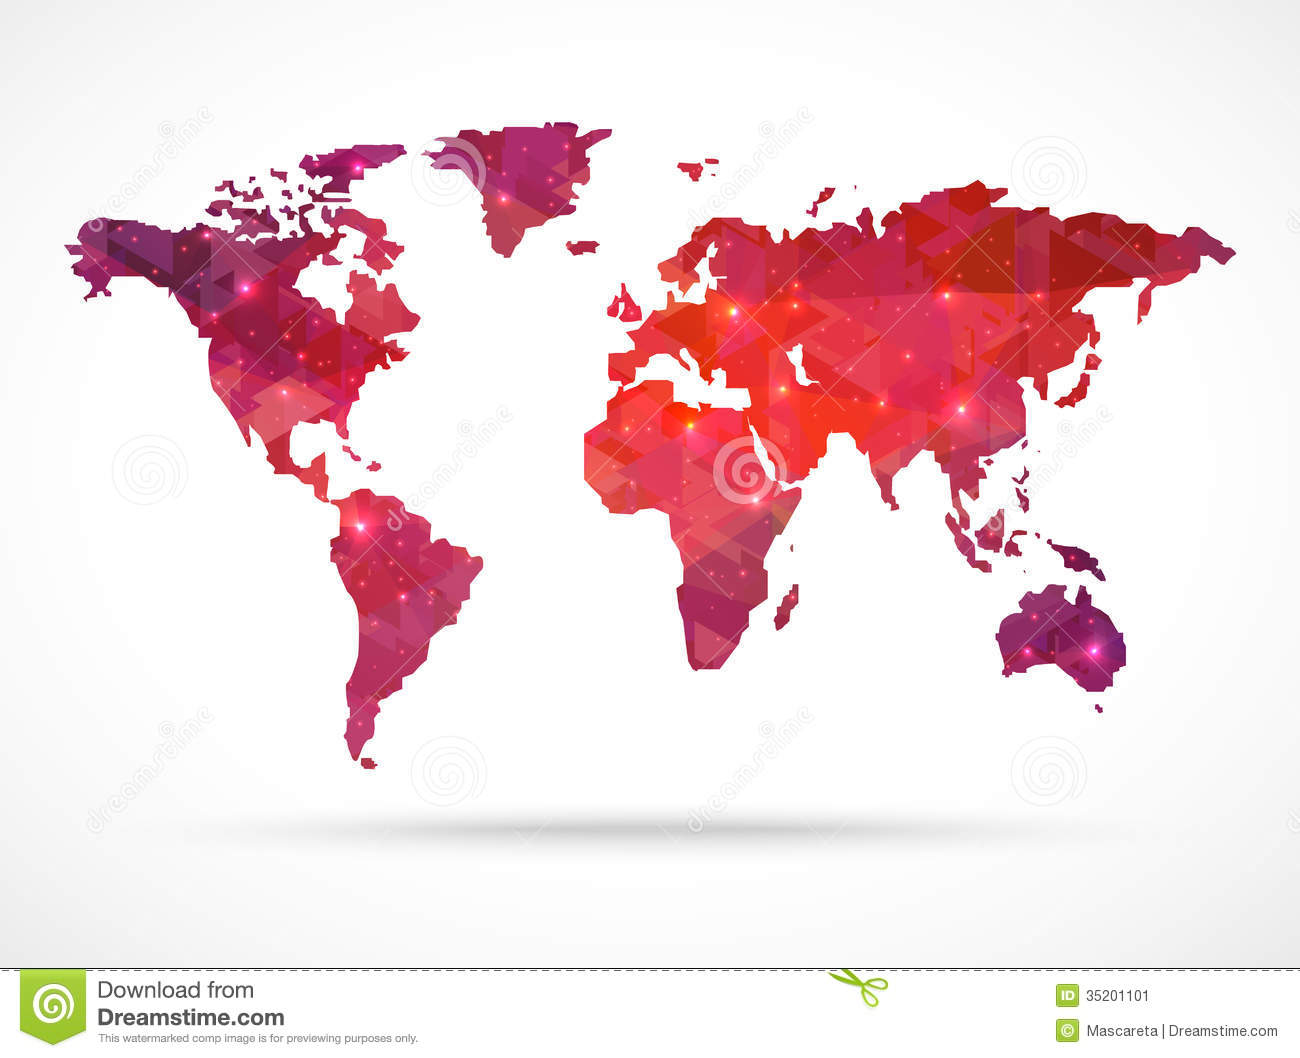 Sparkle diamond vector world map stock vector illustration of sparkle diamond vector world map stock image gumiabroncs Image collections